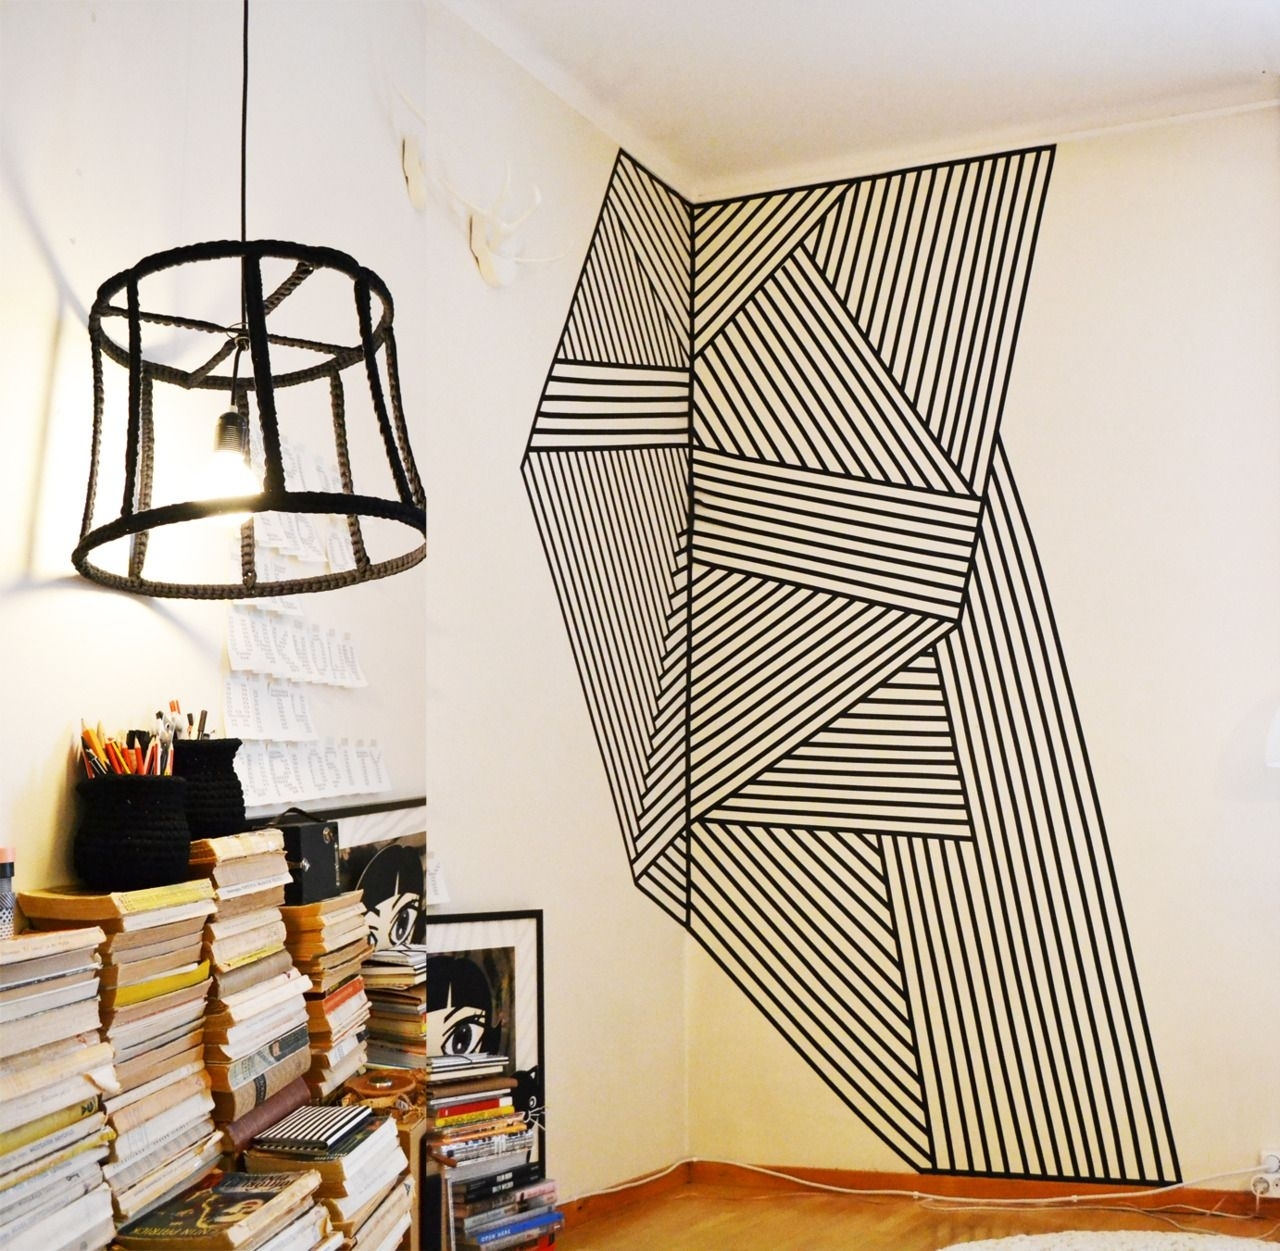 Wall Decoration Made With Black Plastic Tape (View 9 of 15)